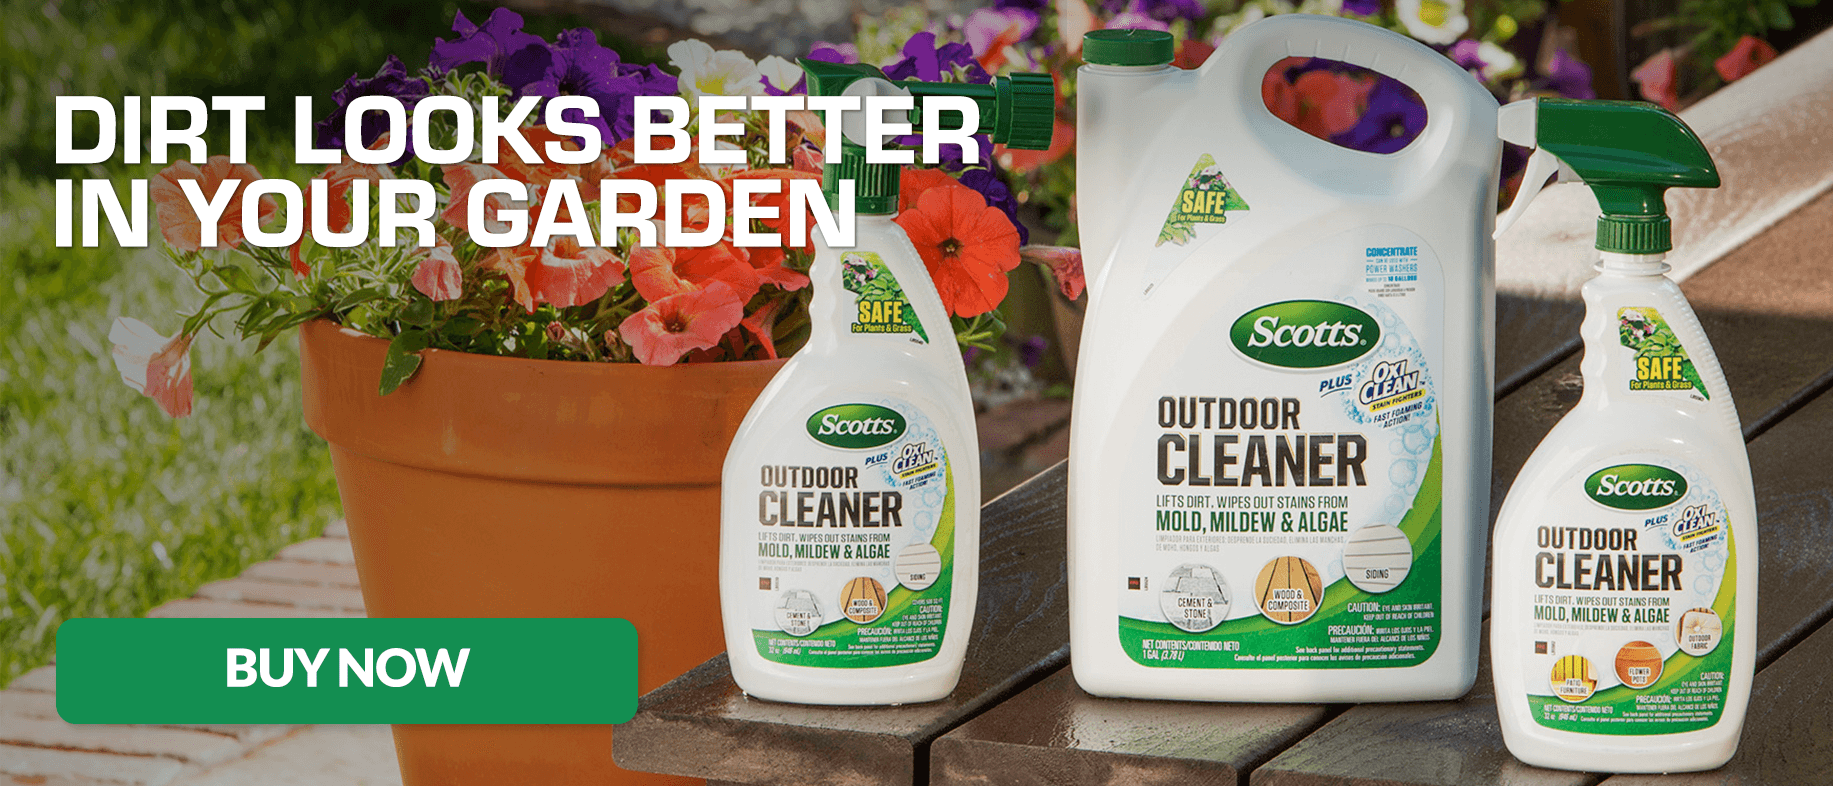 Dirt Looks Better In Your Garden